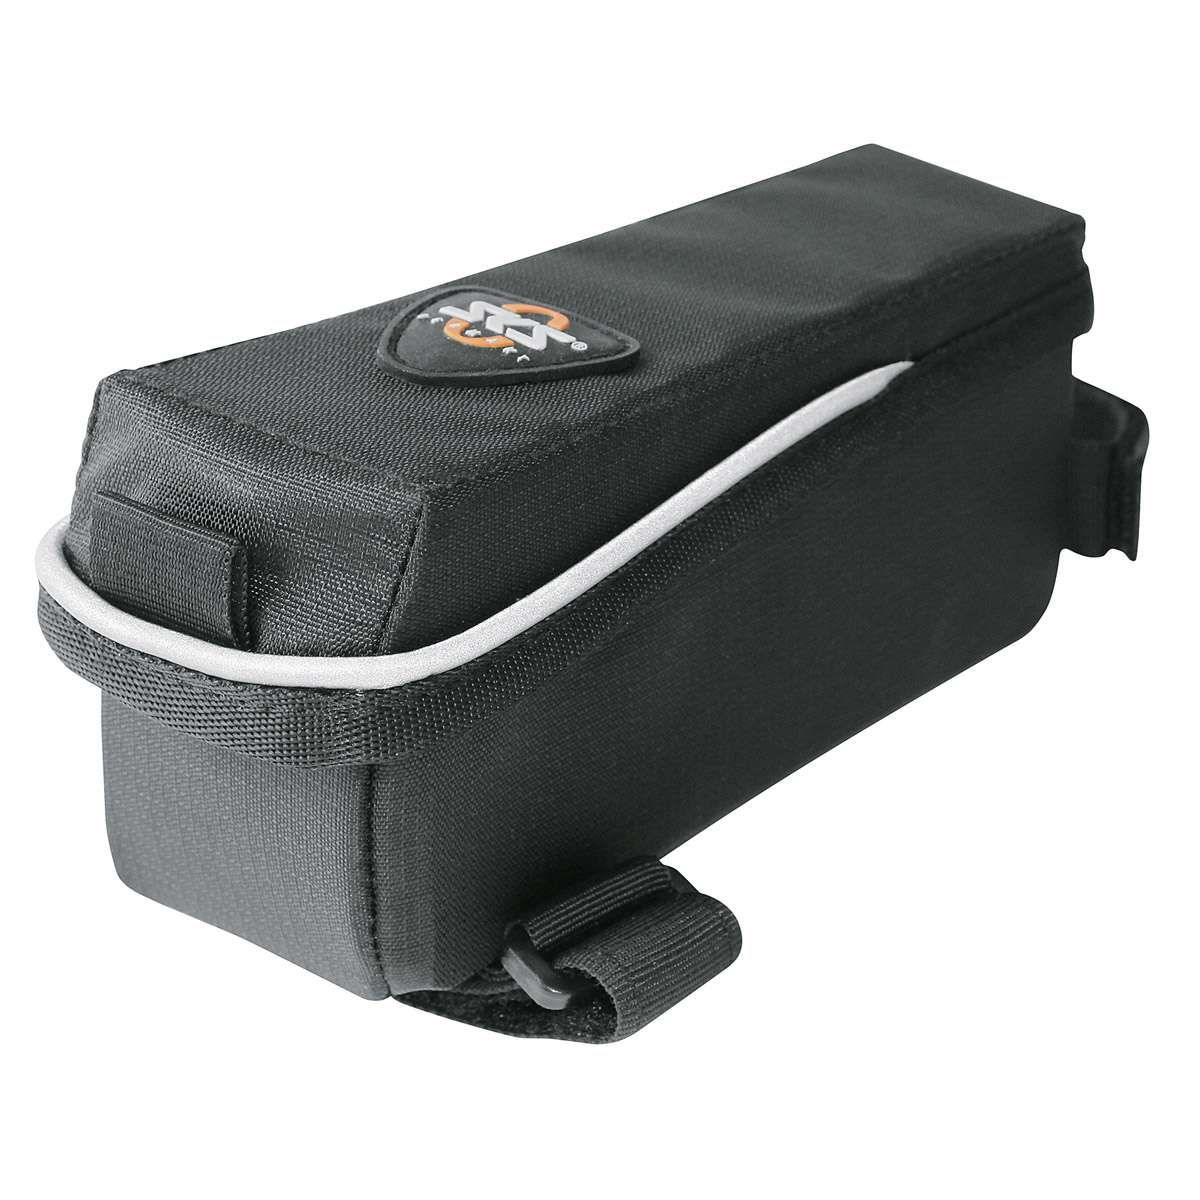 Аксессуар SKS Energy Bag 144 x 53 x 70 мм (SKS-11106) lamplandia настольныя лампа lamplandia l1057p ilmari page 2